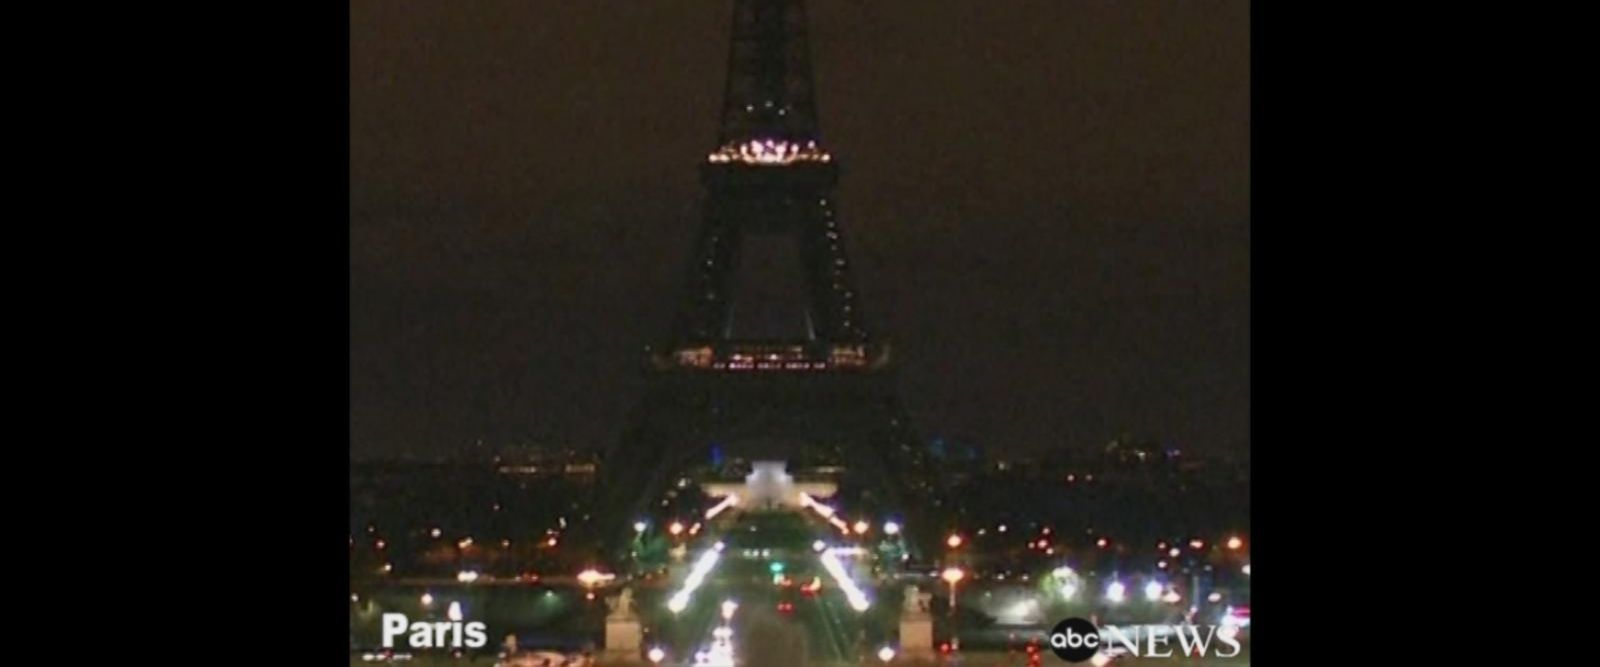 VIDEO: Lights dimmed at Eiffel Tower after London attack